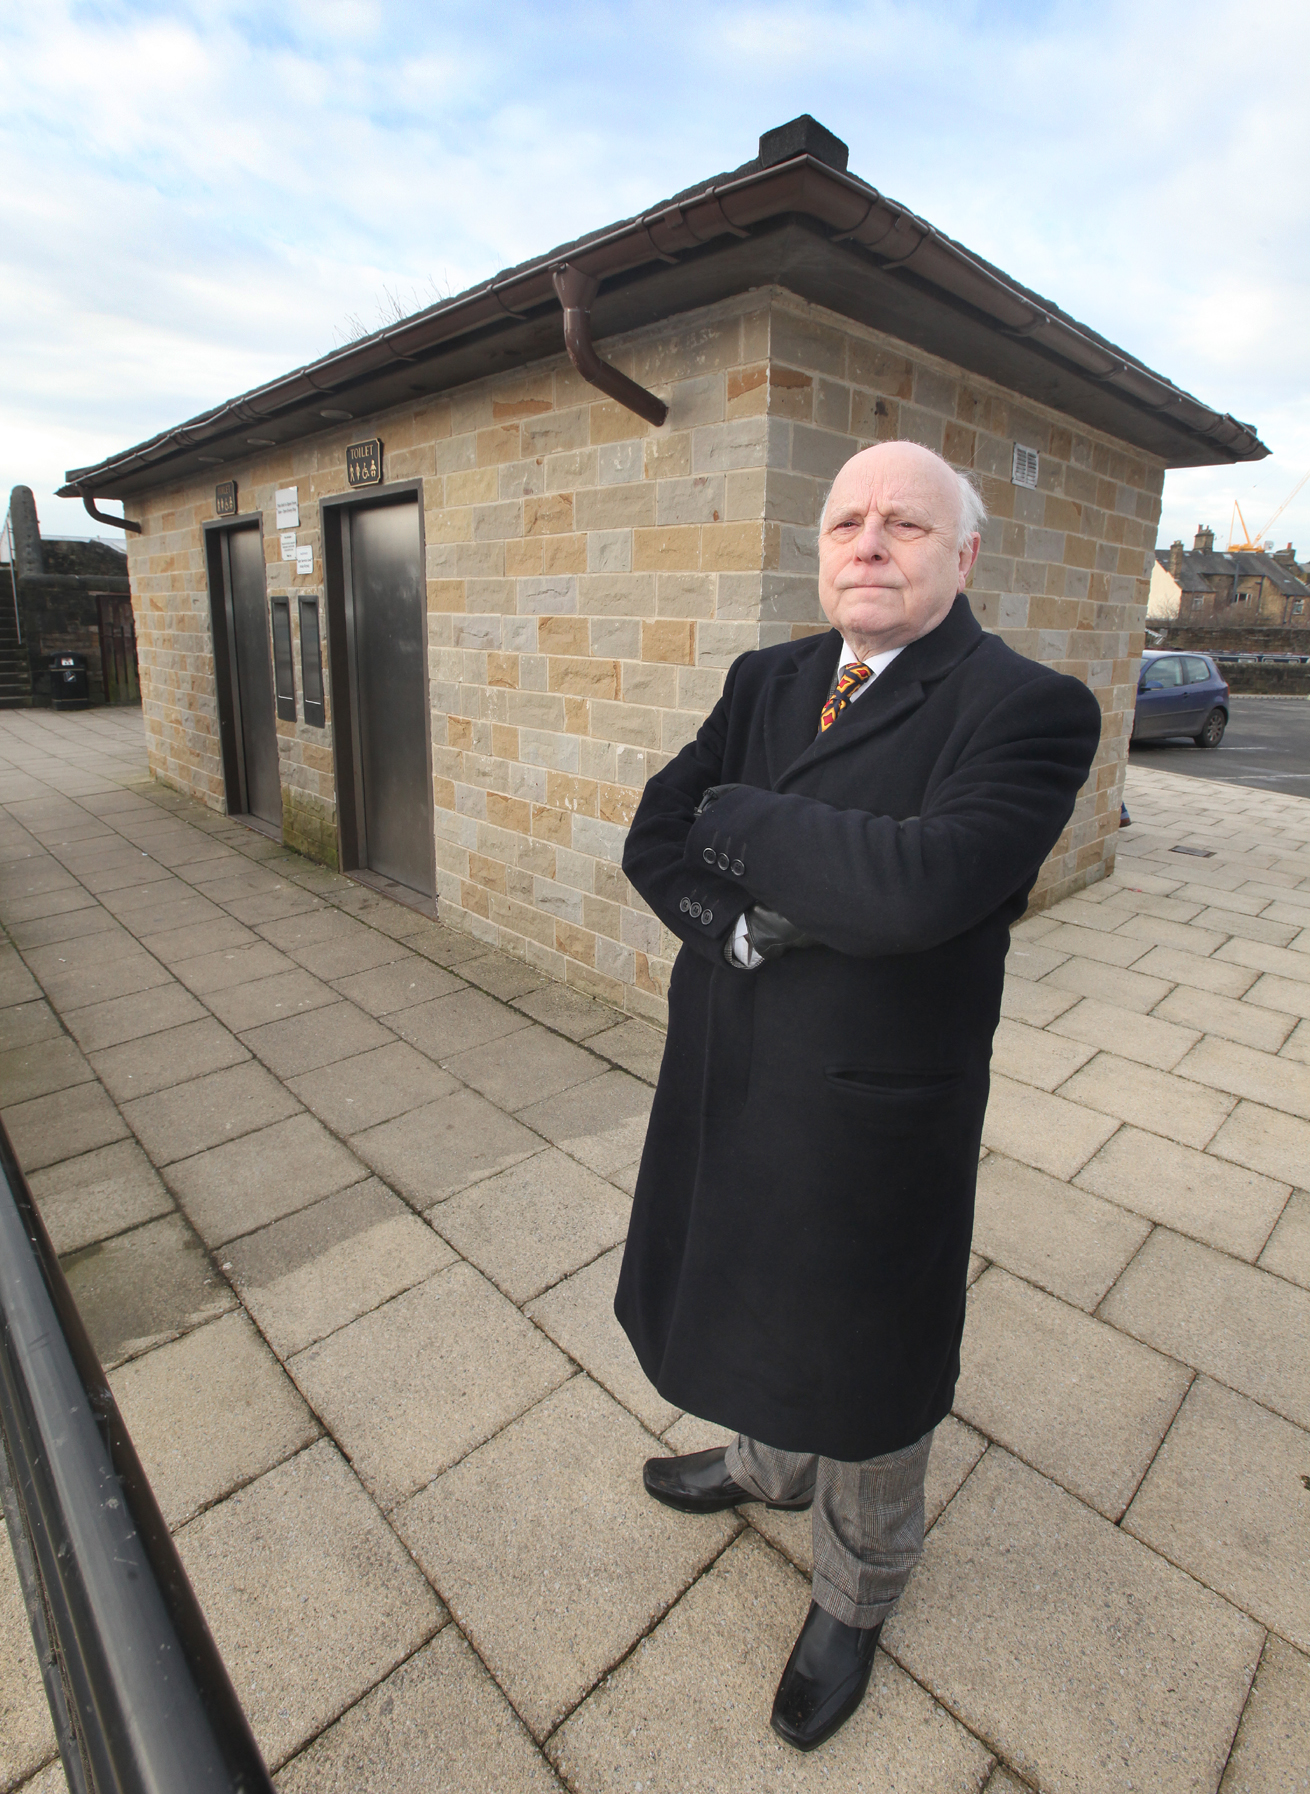 Mayor of Skipton Coun John Kerwin-Davey stands in front of the bus station toilets